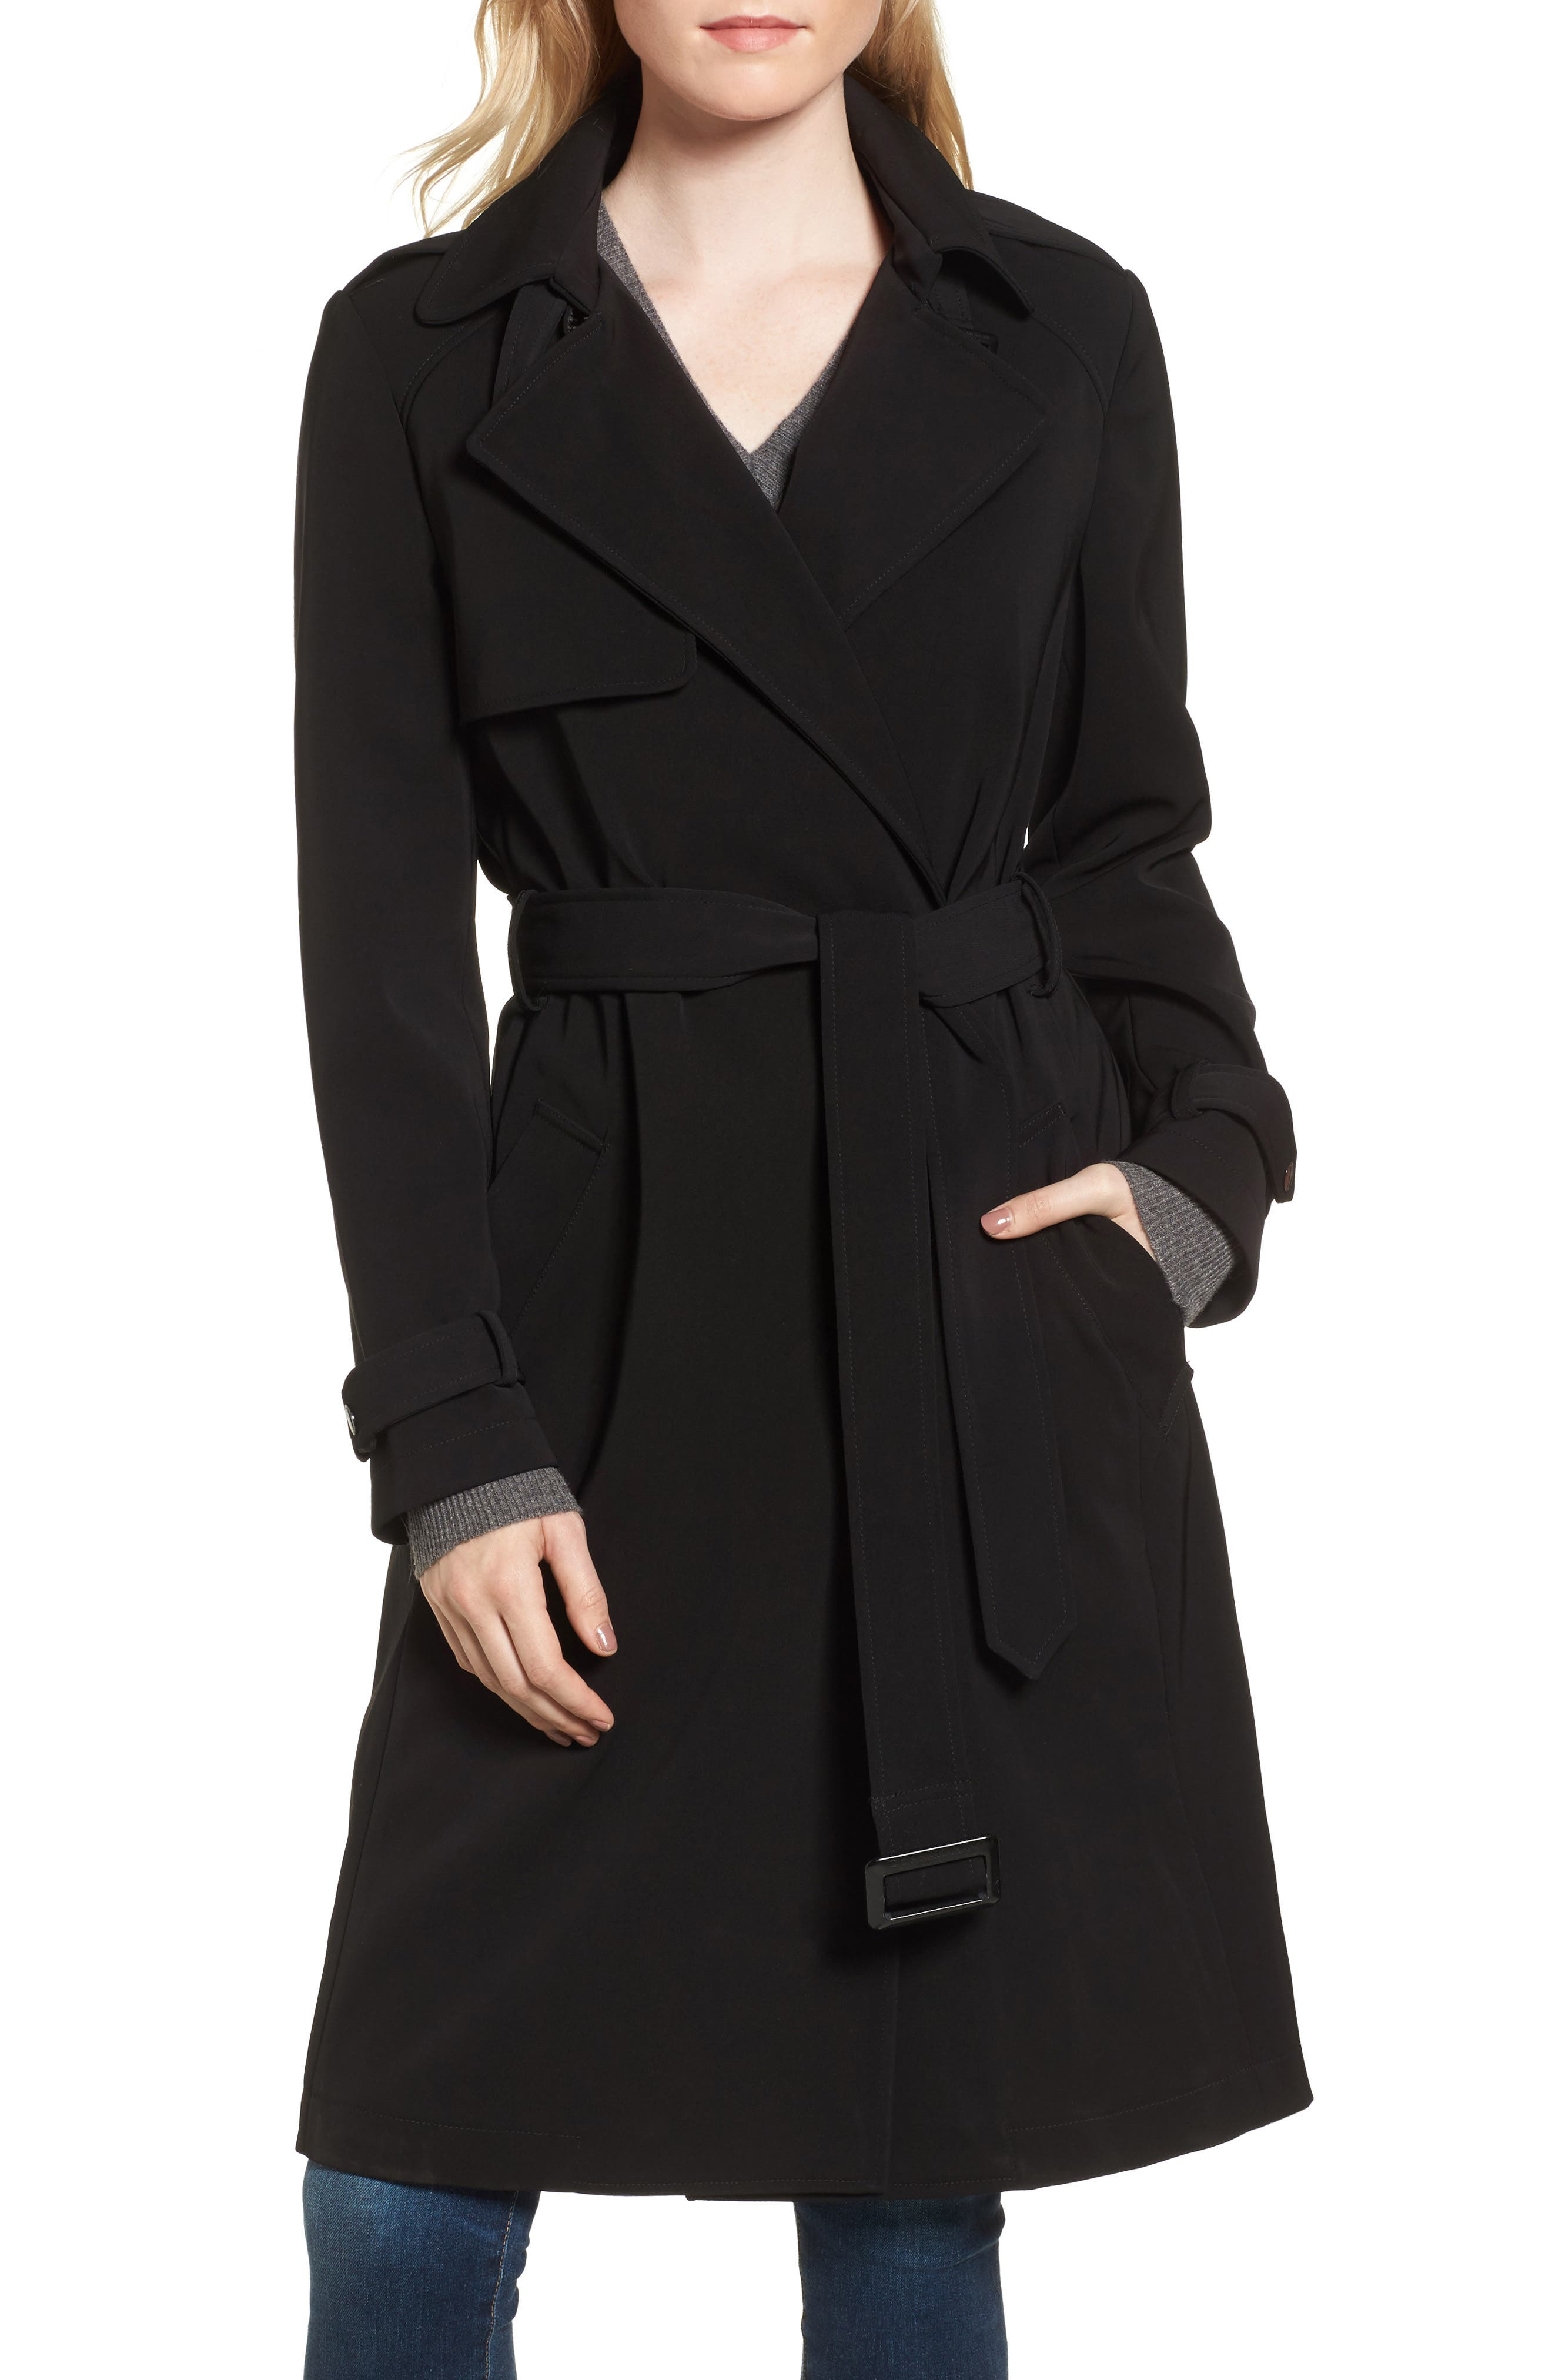 DKNY French Twill Water Resistant Trench Coat,                             Main thumbnail 1, color,                             001